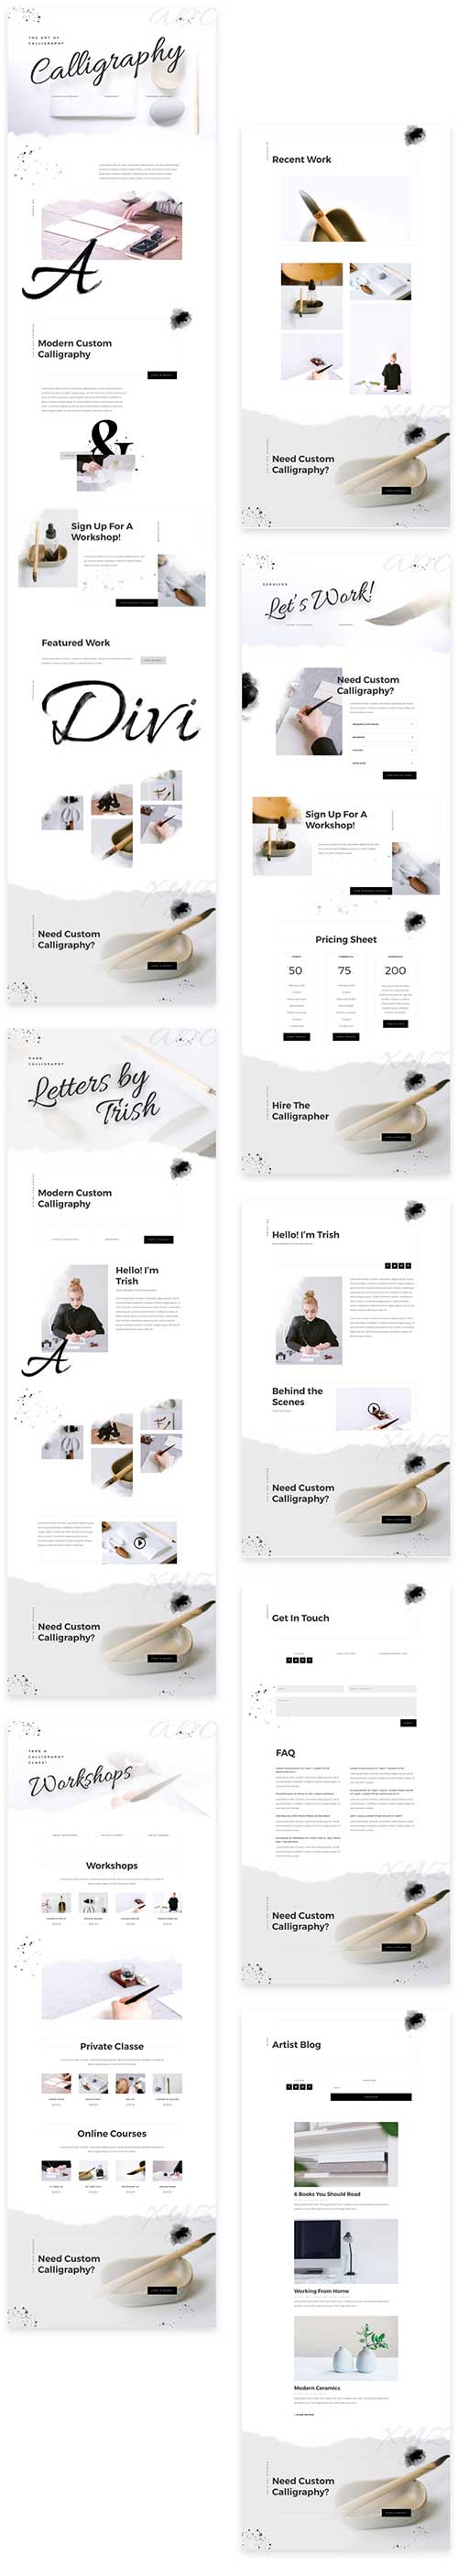 calligraphy writer layout